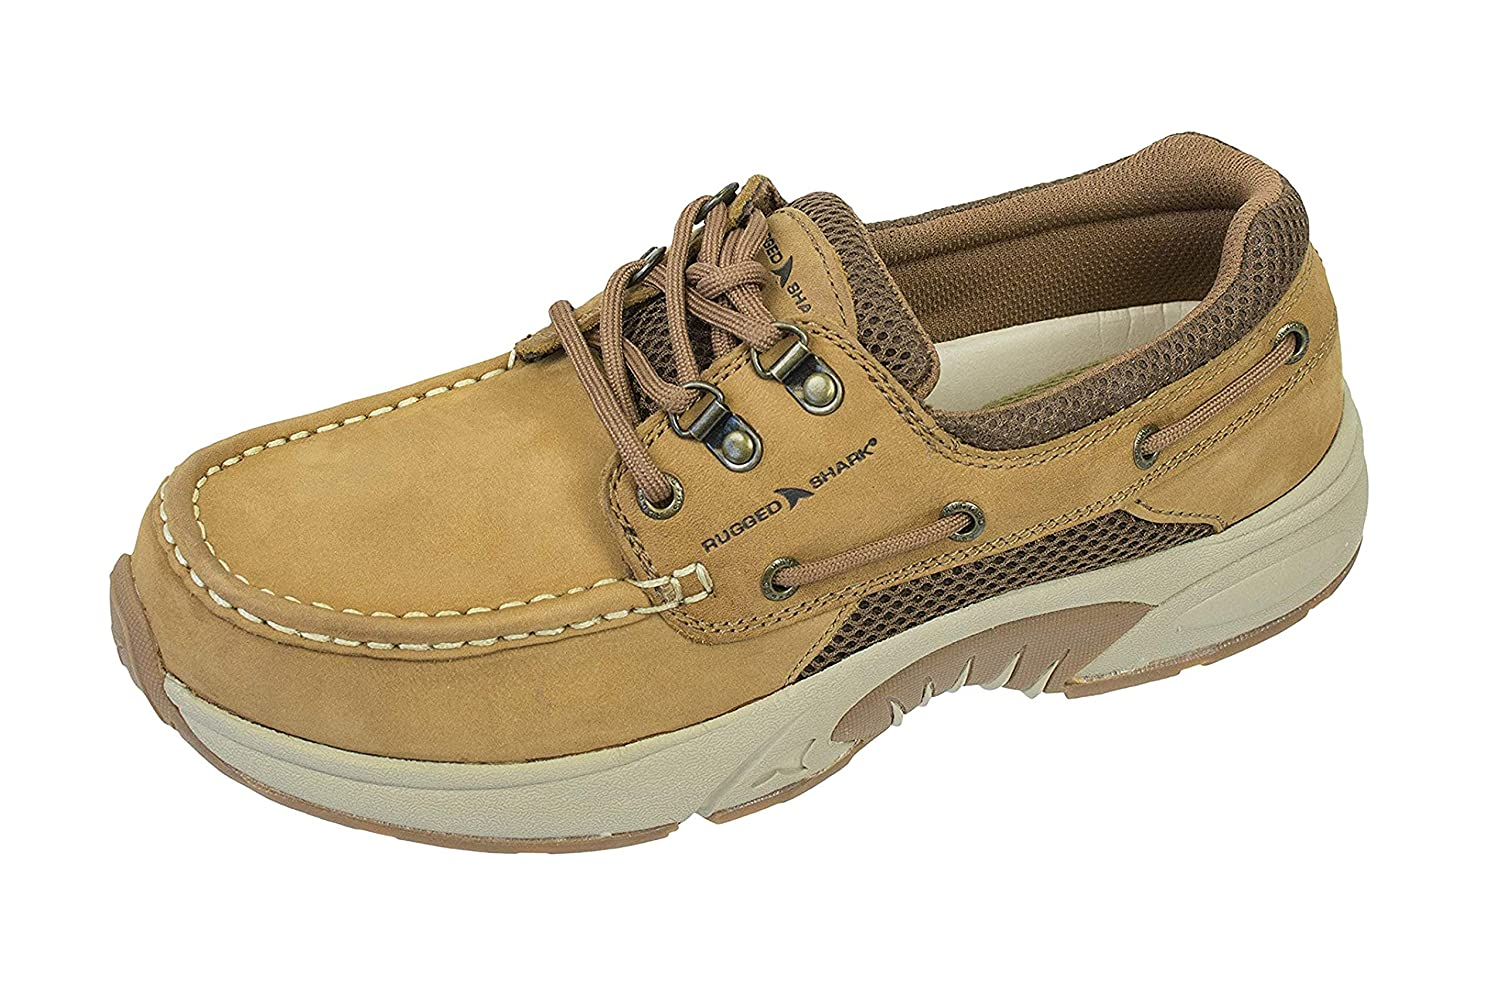 Rugged Shark Atlantic Mens Boat Shoes, Premium Leather and Comfort, Copper Brown, Size 8 to 13